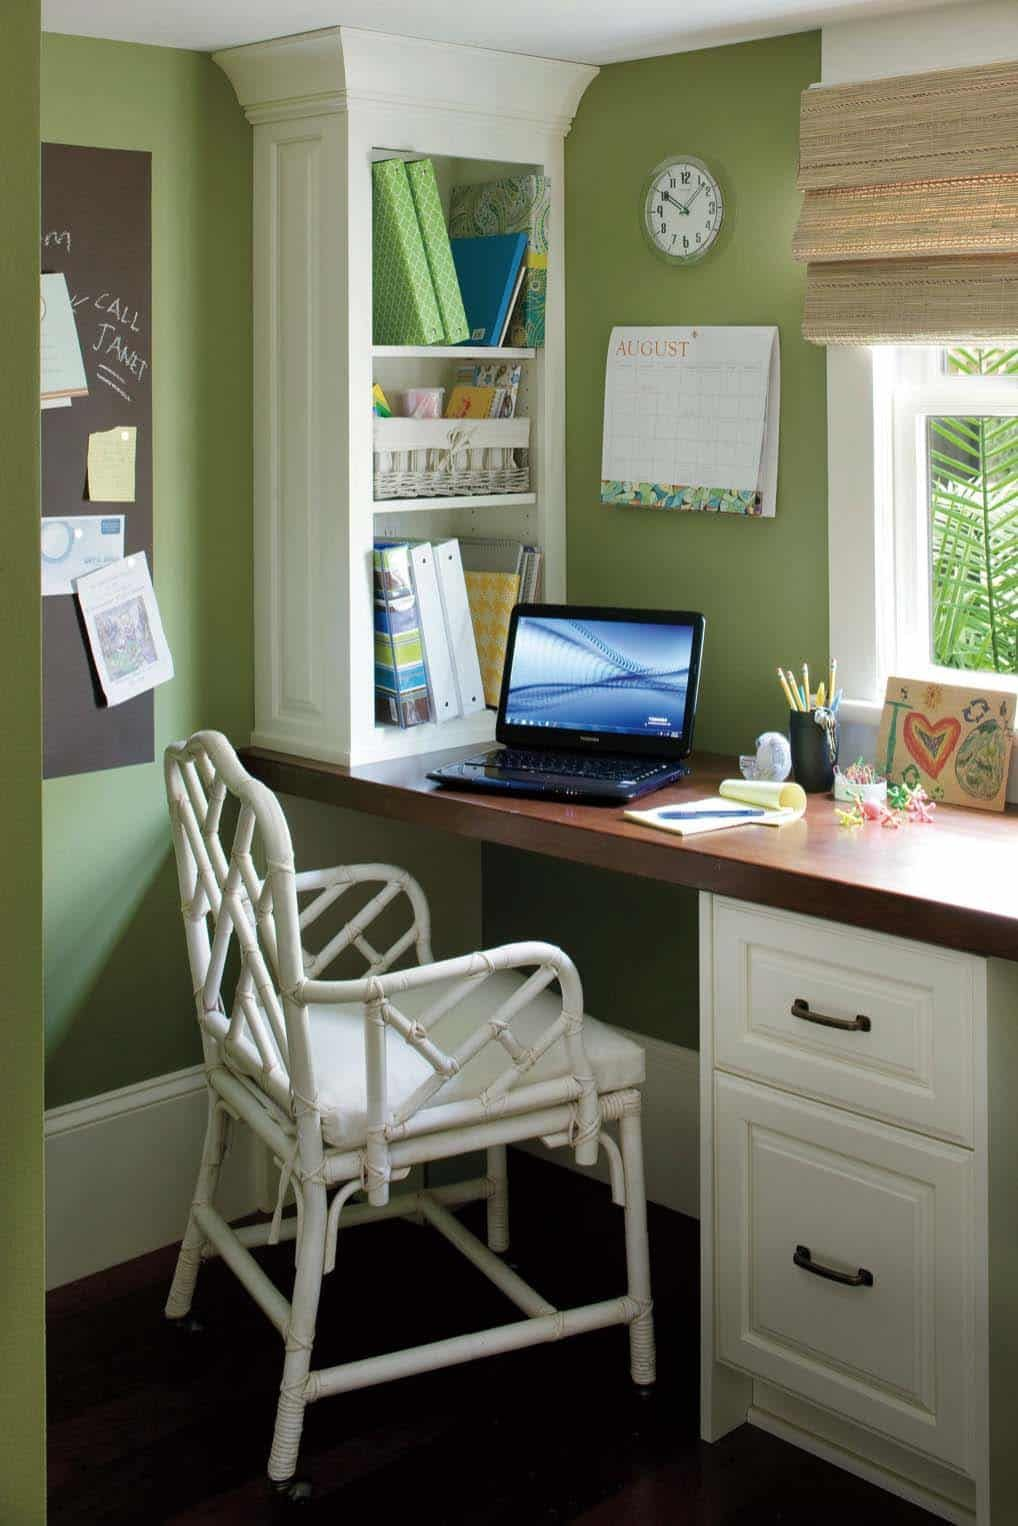 25 Small And Creative Home Office Design Ideas To Inspire ...